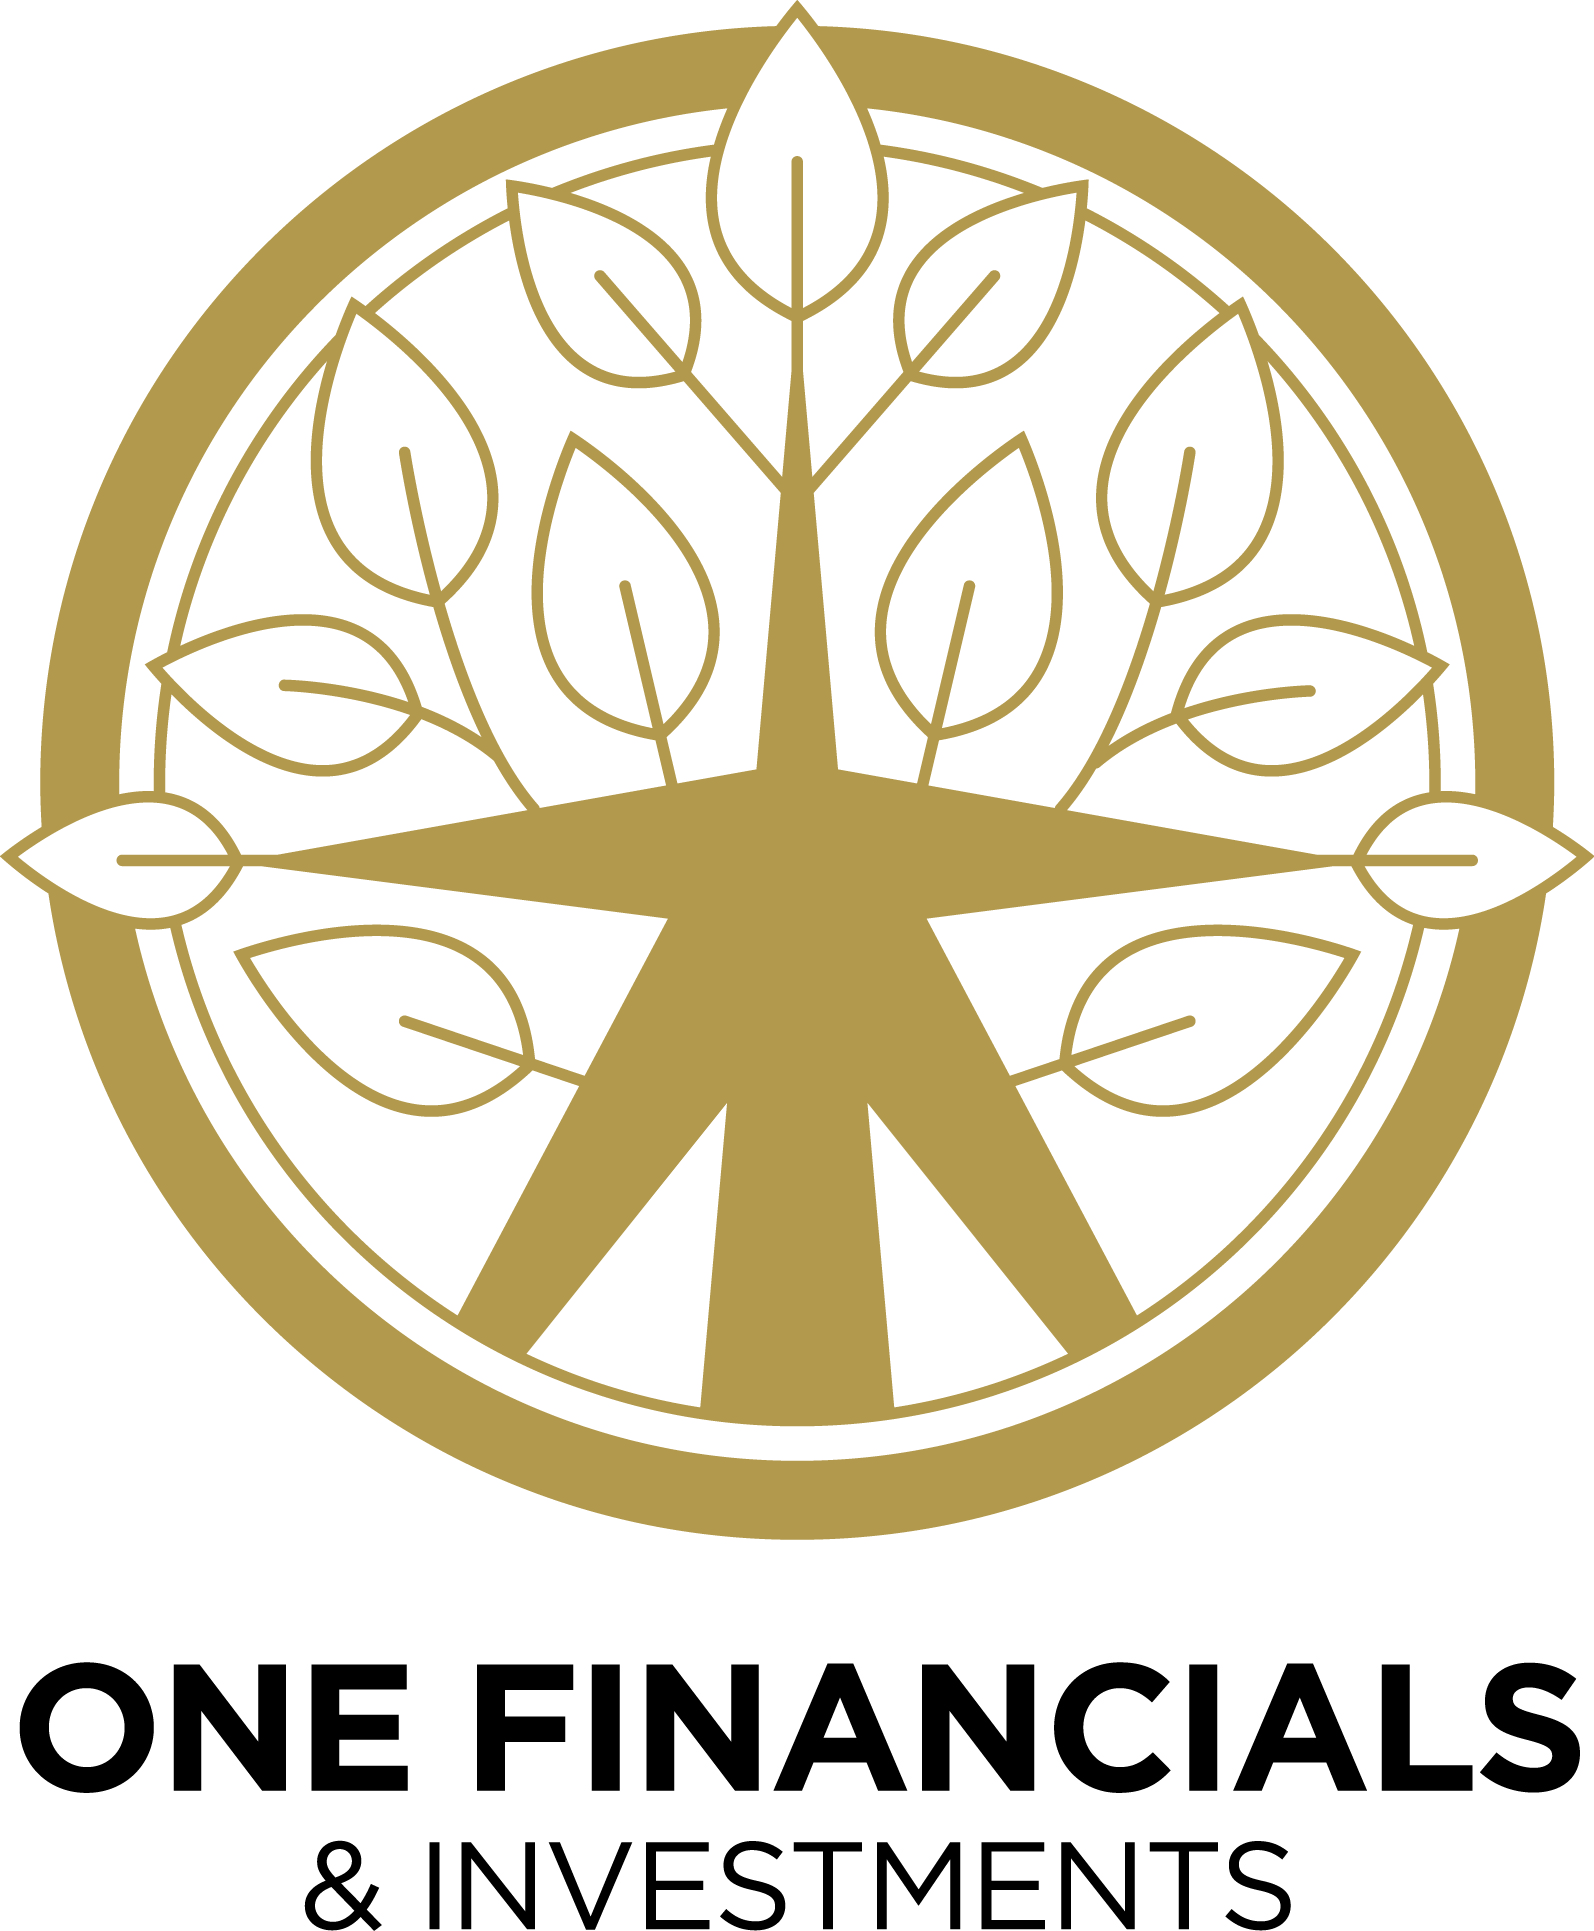 One Financials & Investment